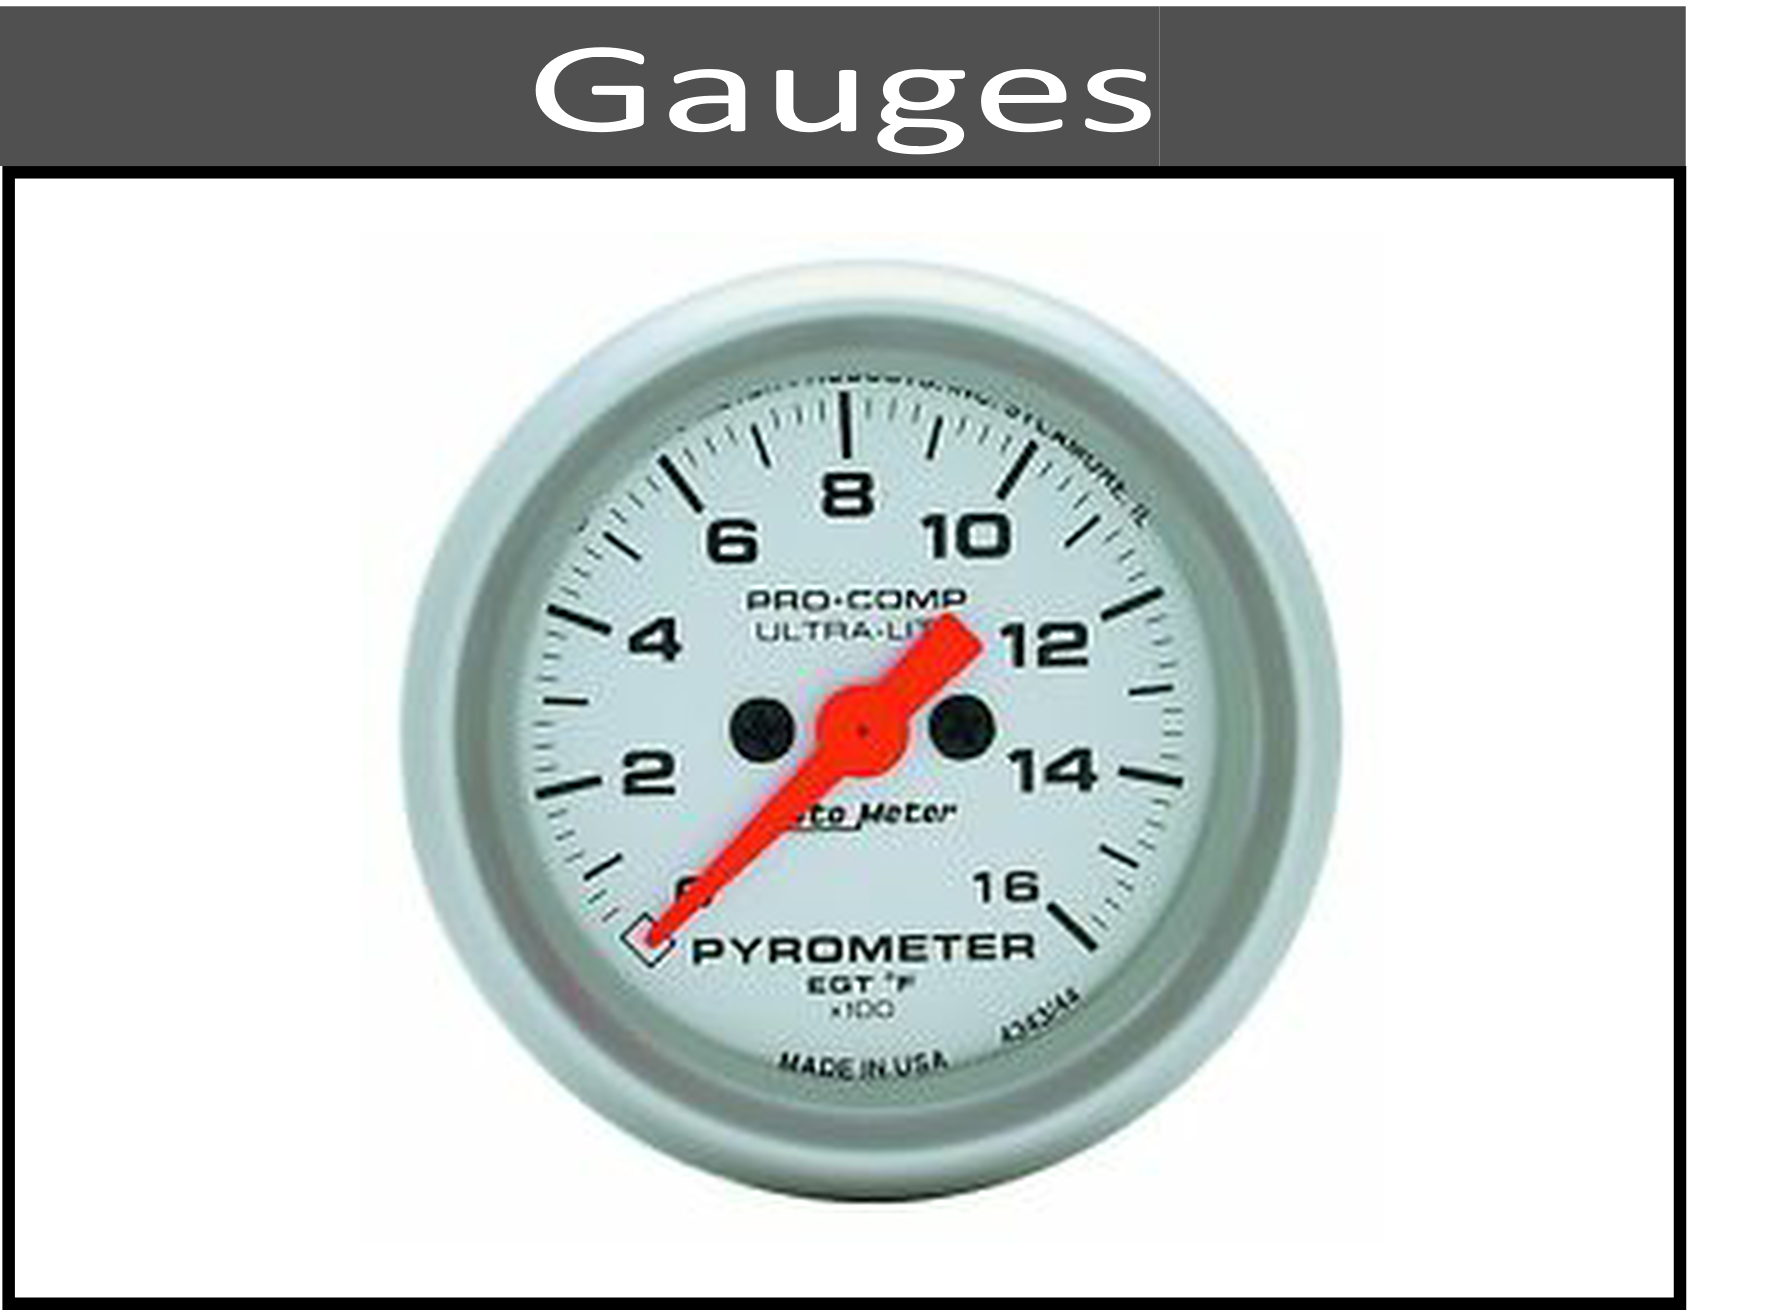 Pyrometers, Boost, and Temp Gauges